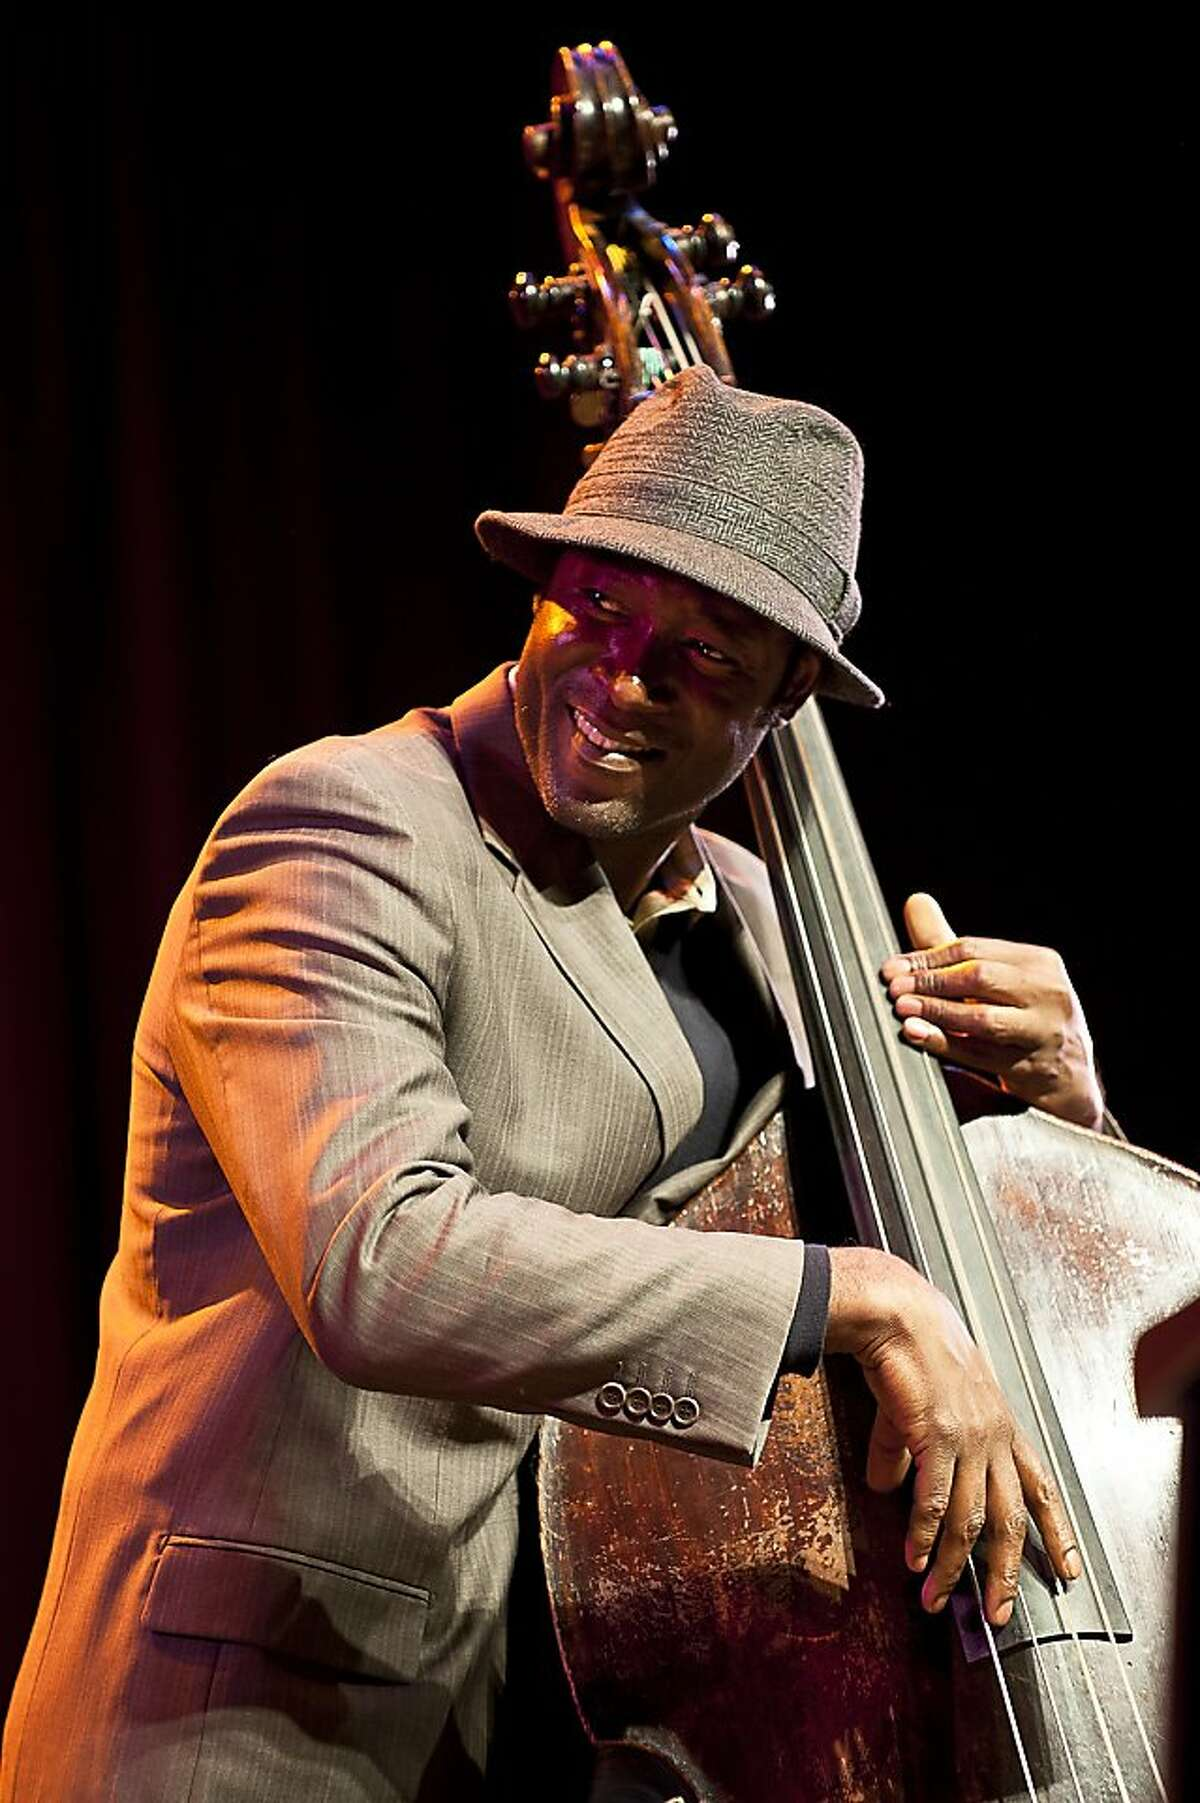 Bassist and composer Marcus Shelby, who's putting together a jazz choir for the Healdsburg Jazz Festival with a two-year grant from the James Irvine Foundation.